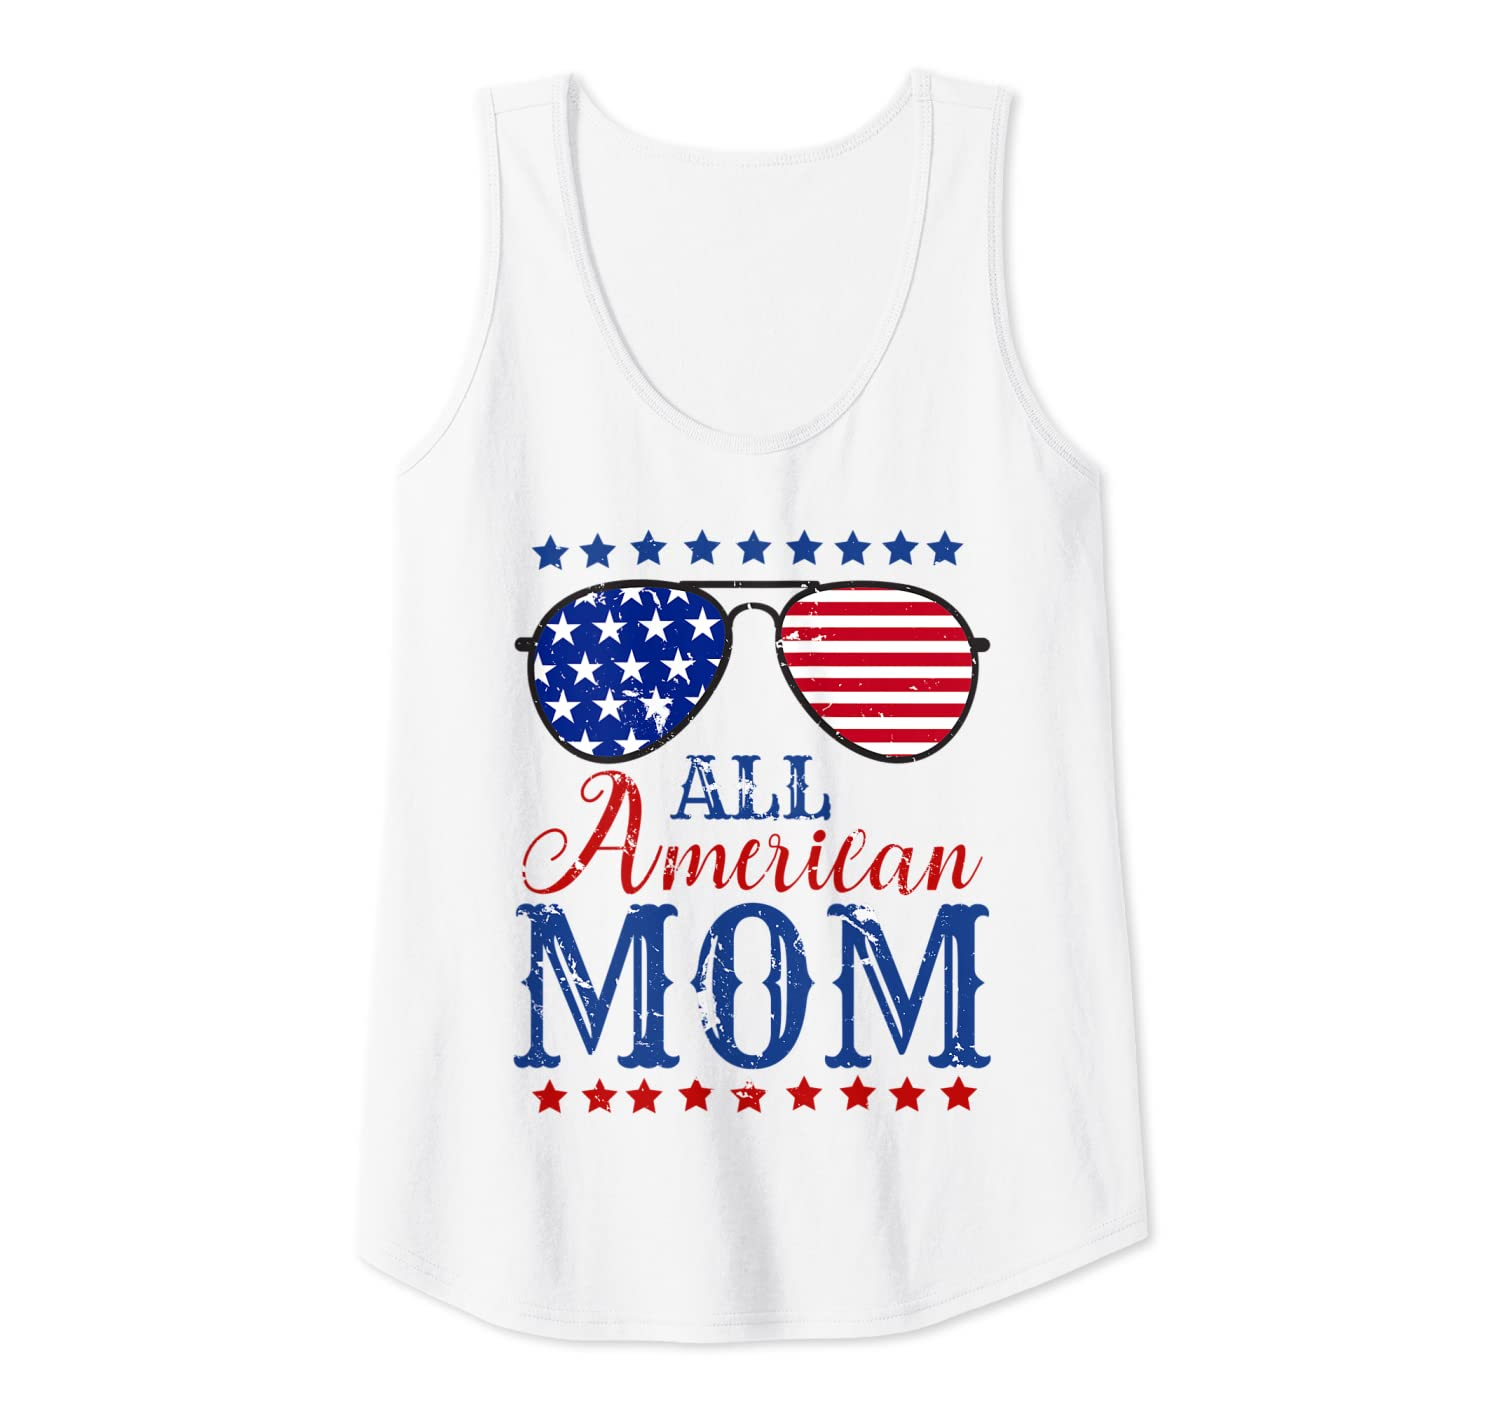 All American Mom 4th Of July Sunglasses Matching Family Tank Top Shirts